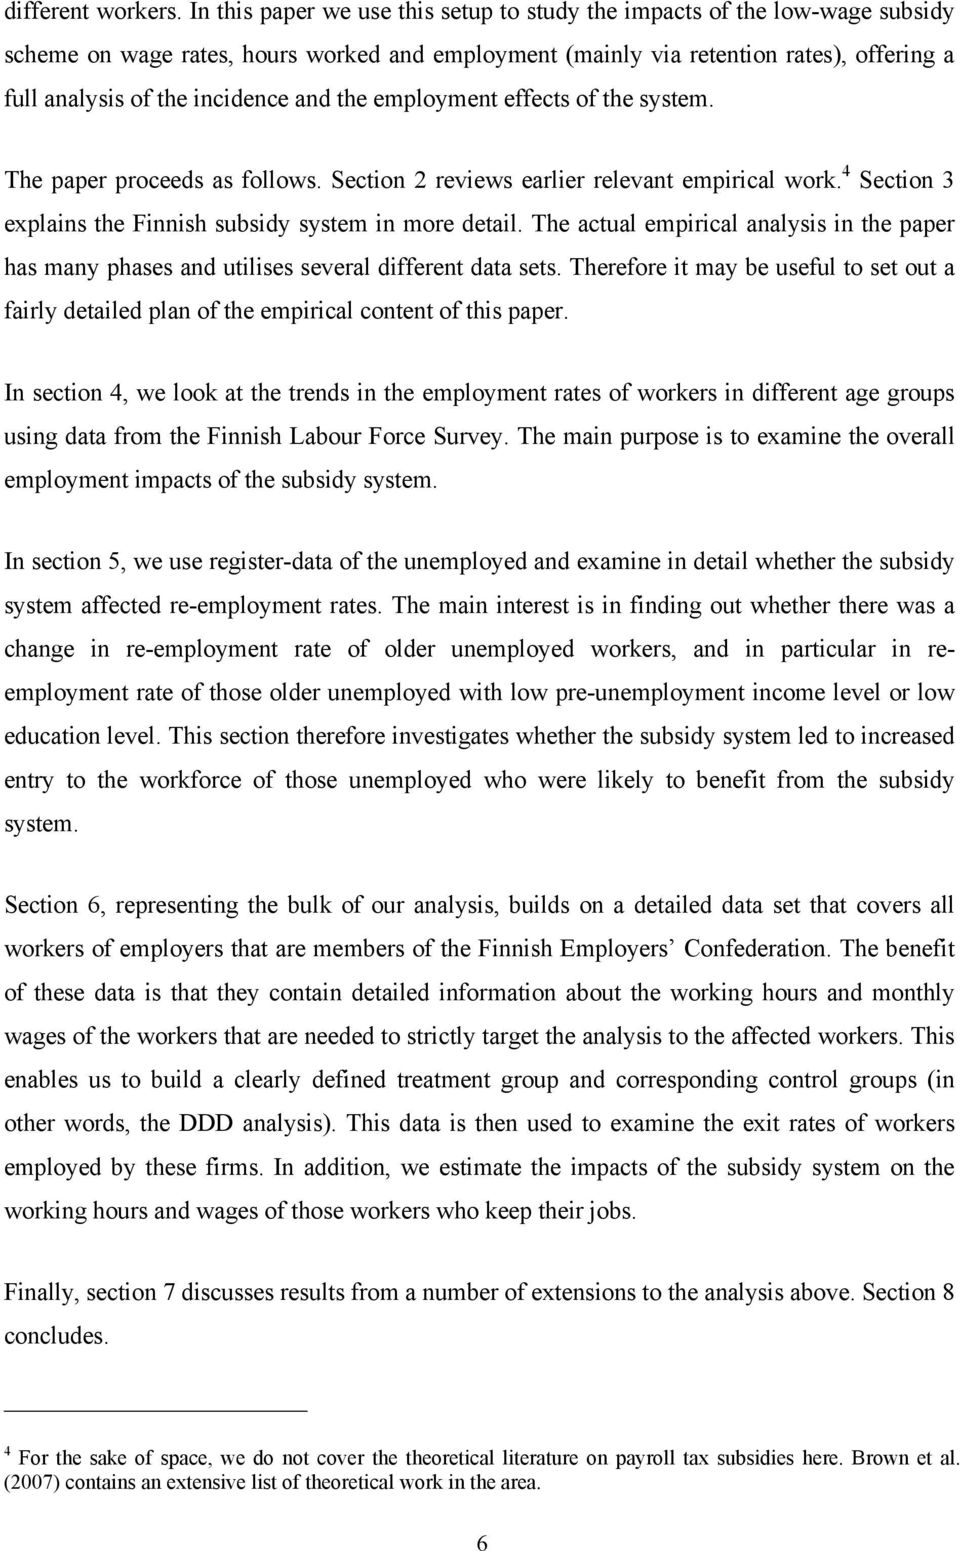 and the employment effects of the system. The paper proceeds as follows. Section 2 reviews earlier relevant empirical work. 4 Section 3 explains the Finnish subsidy system in more detail.